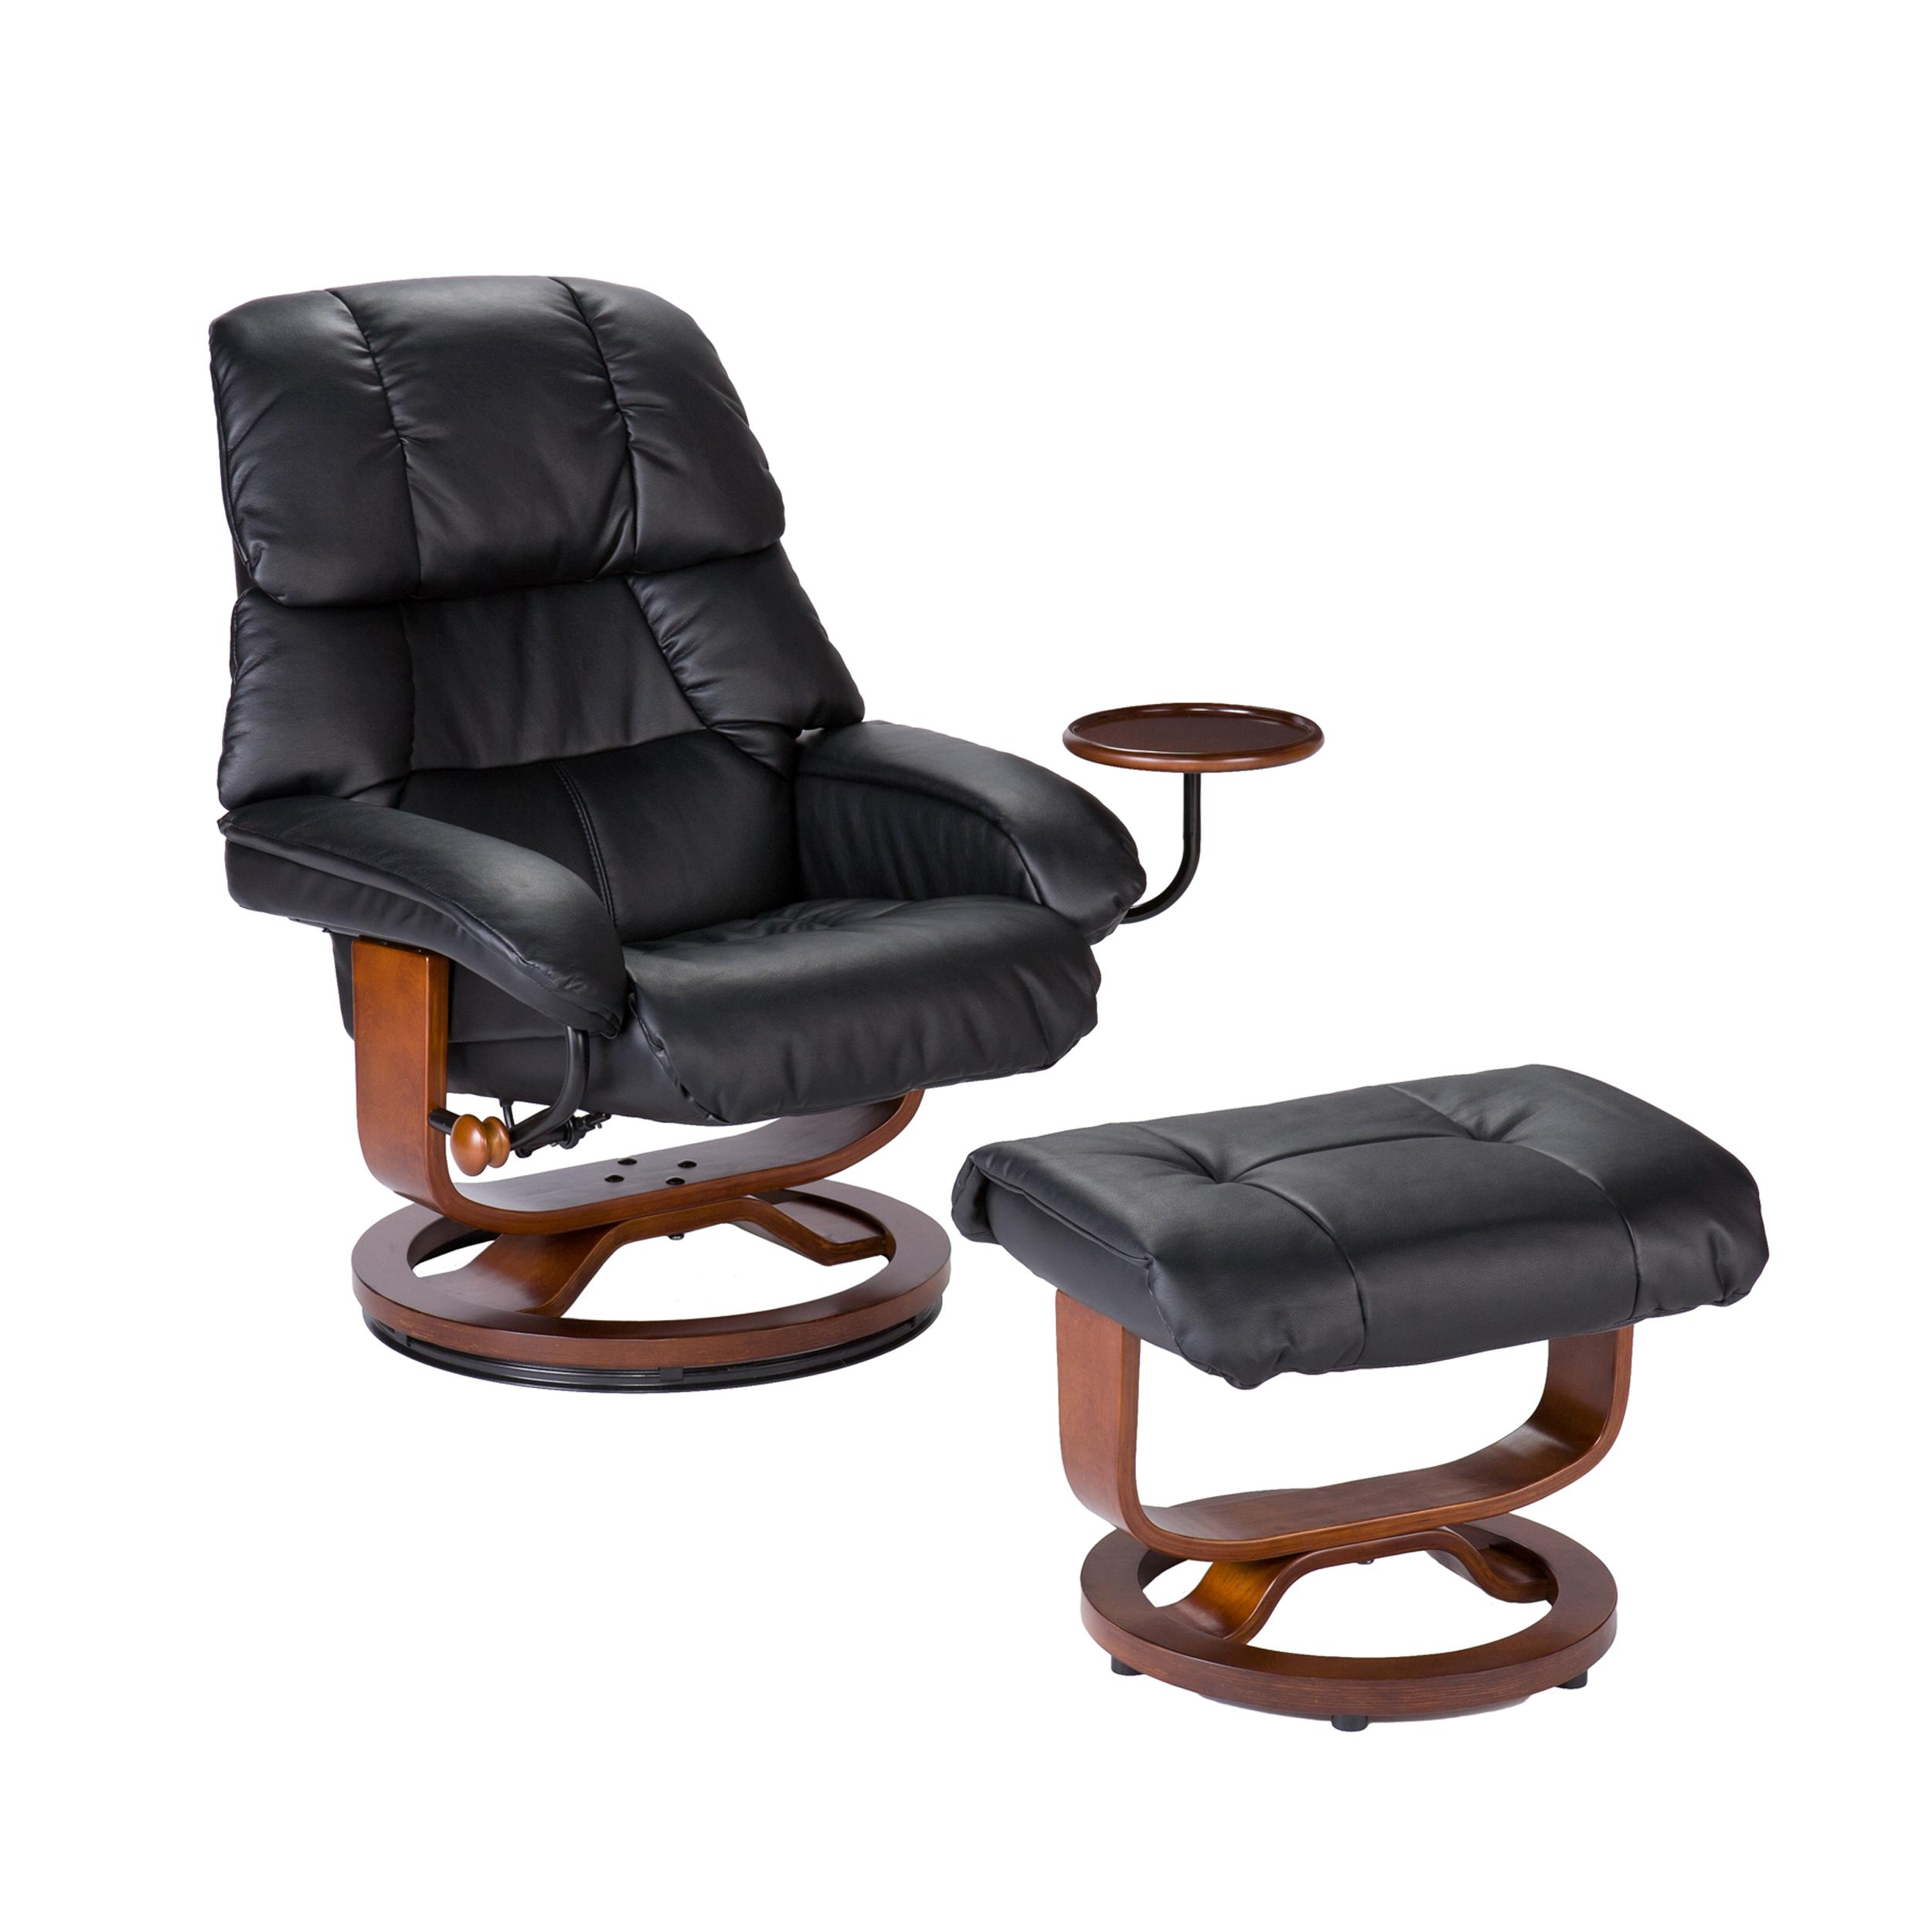 View larger  sc 1 st  Amazon.com & Amazon.com: Bonded Leather Recliner and Ottoman - Black: Kitchen ... islam-shia.org